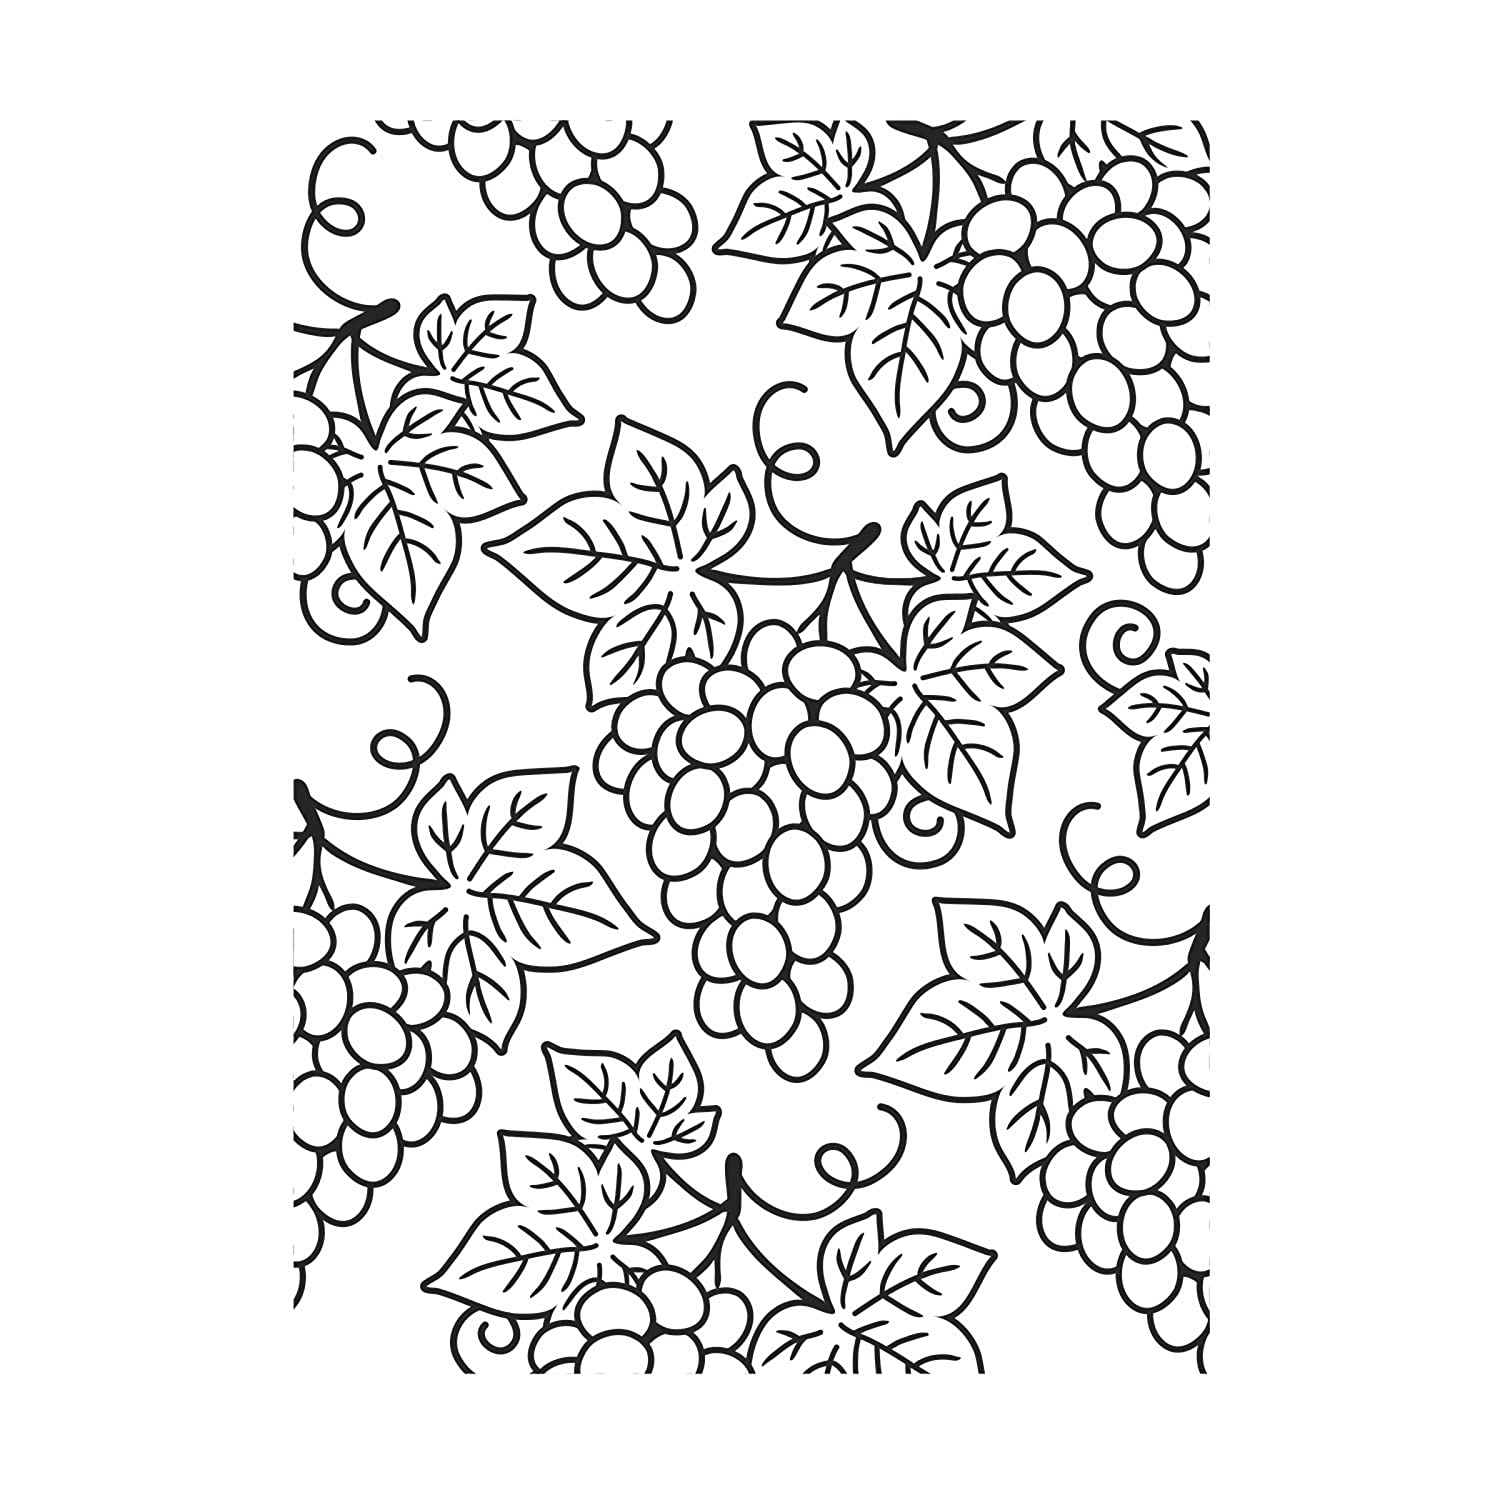 Darice Grapes Background Embossing Folder, Clear/White, 4.25 x 5.75-Inch 30008383